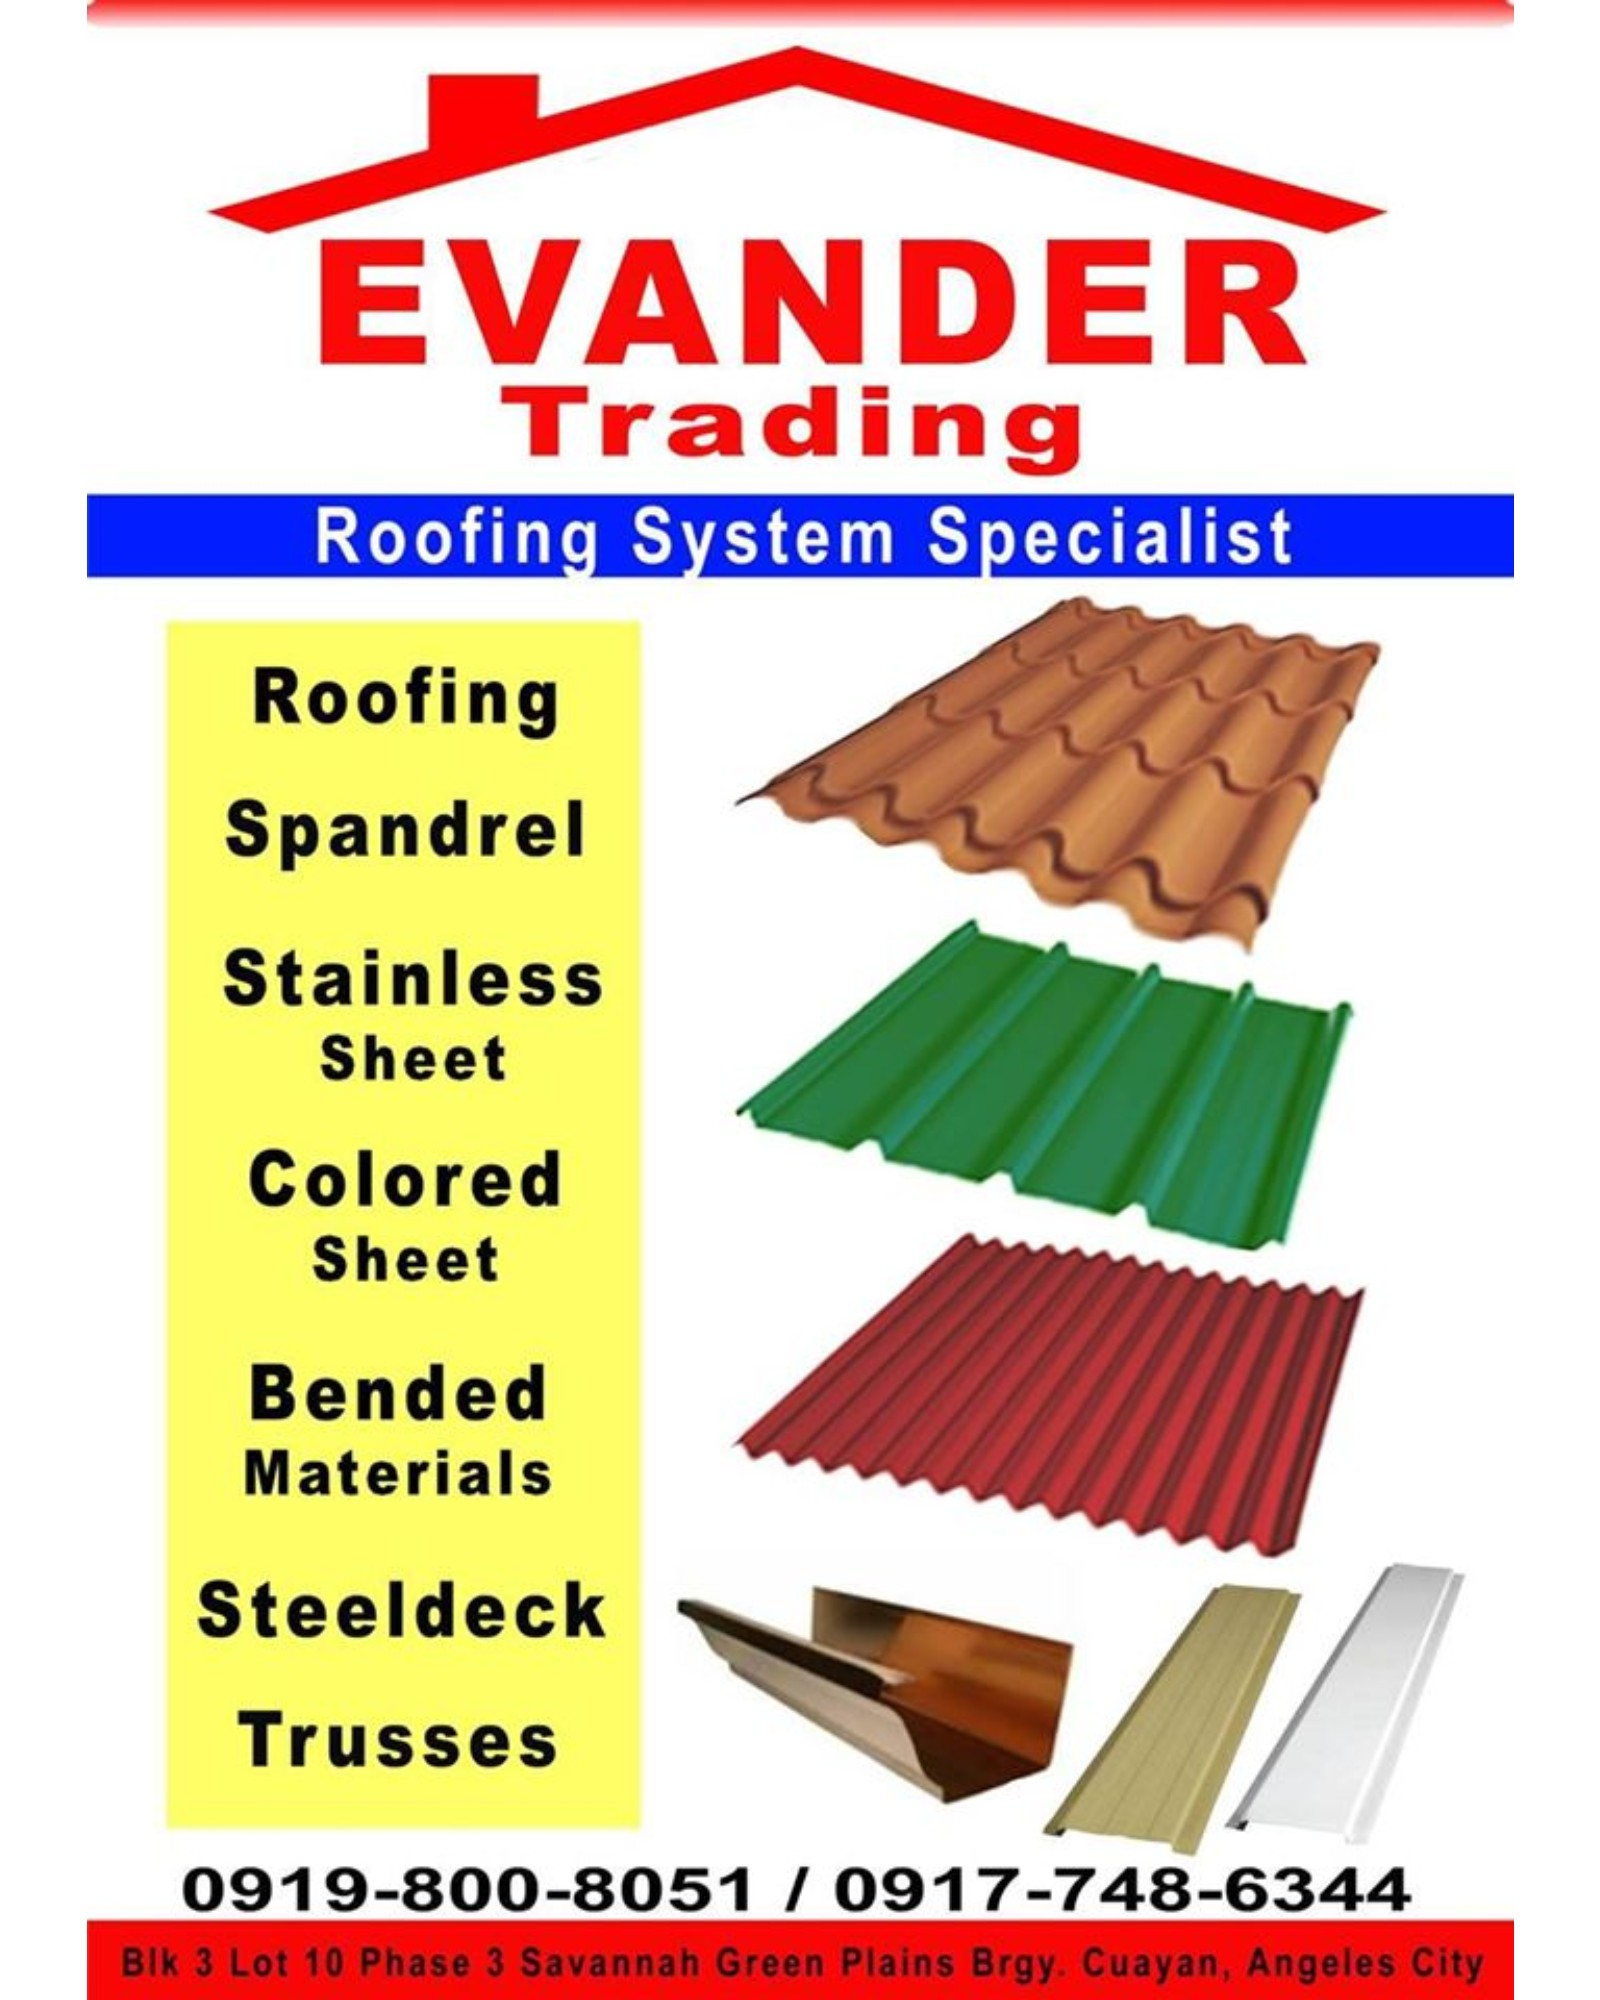 Evander Trading Supply and Services